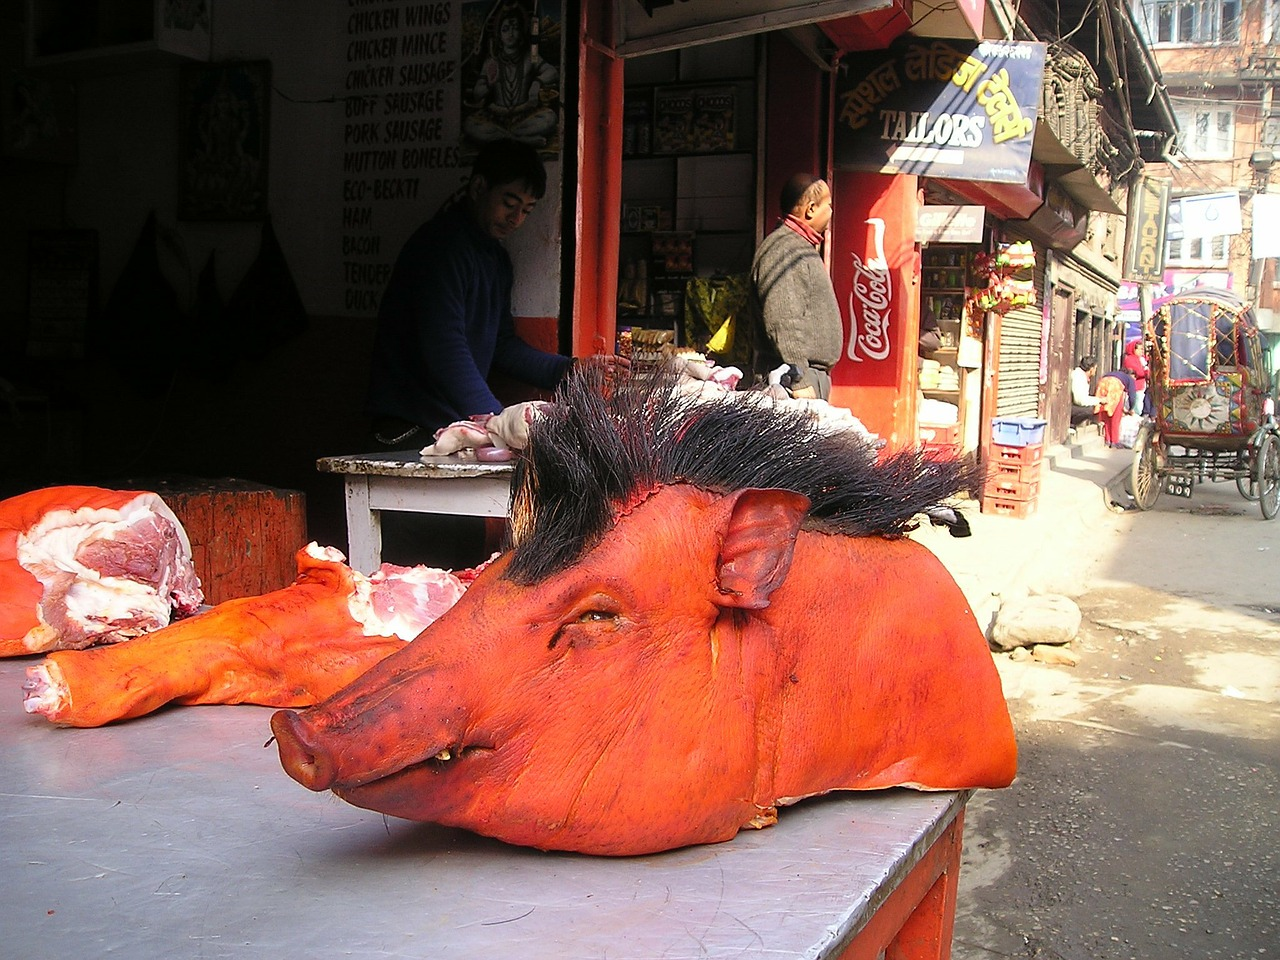 nepal,pig,head,butcher's,butcher,slaughterhouse,raw,red,painted,color,free pictures, free photos, free images, royalty free, free illustrations, public domain